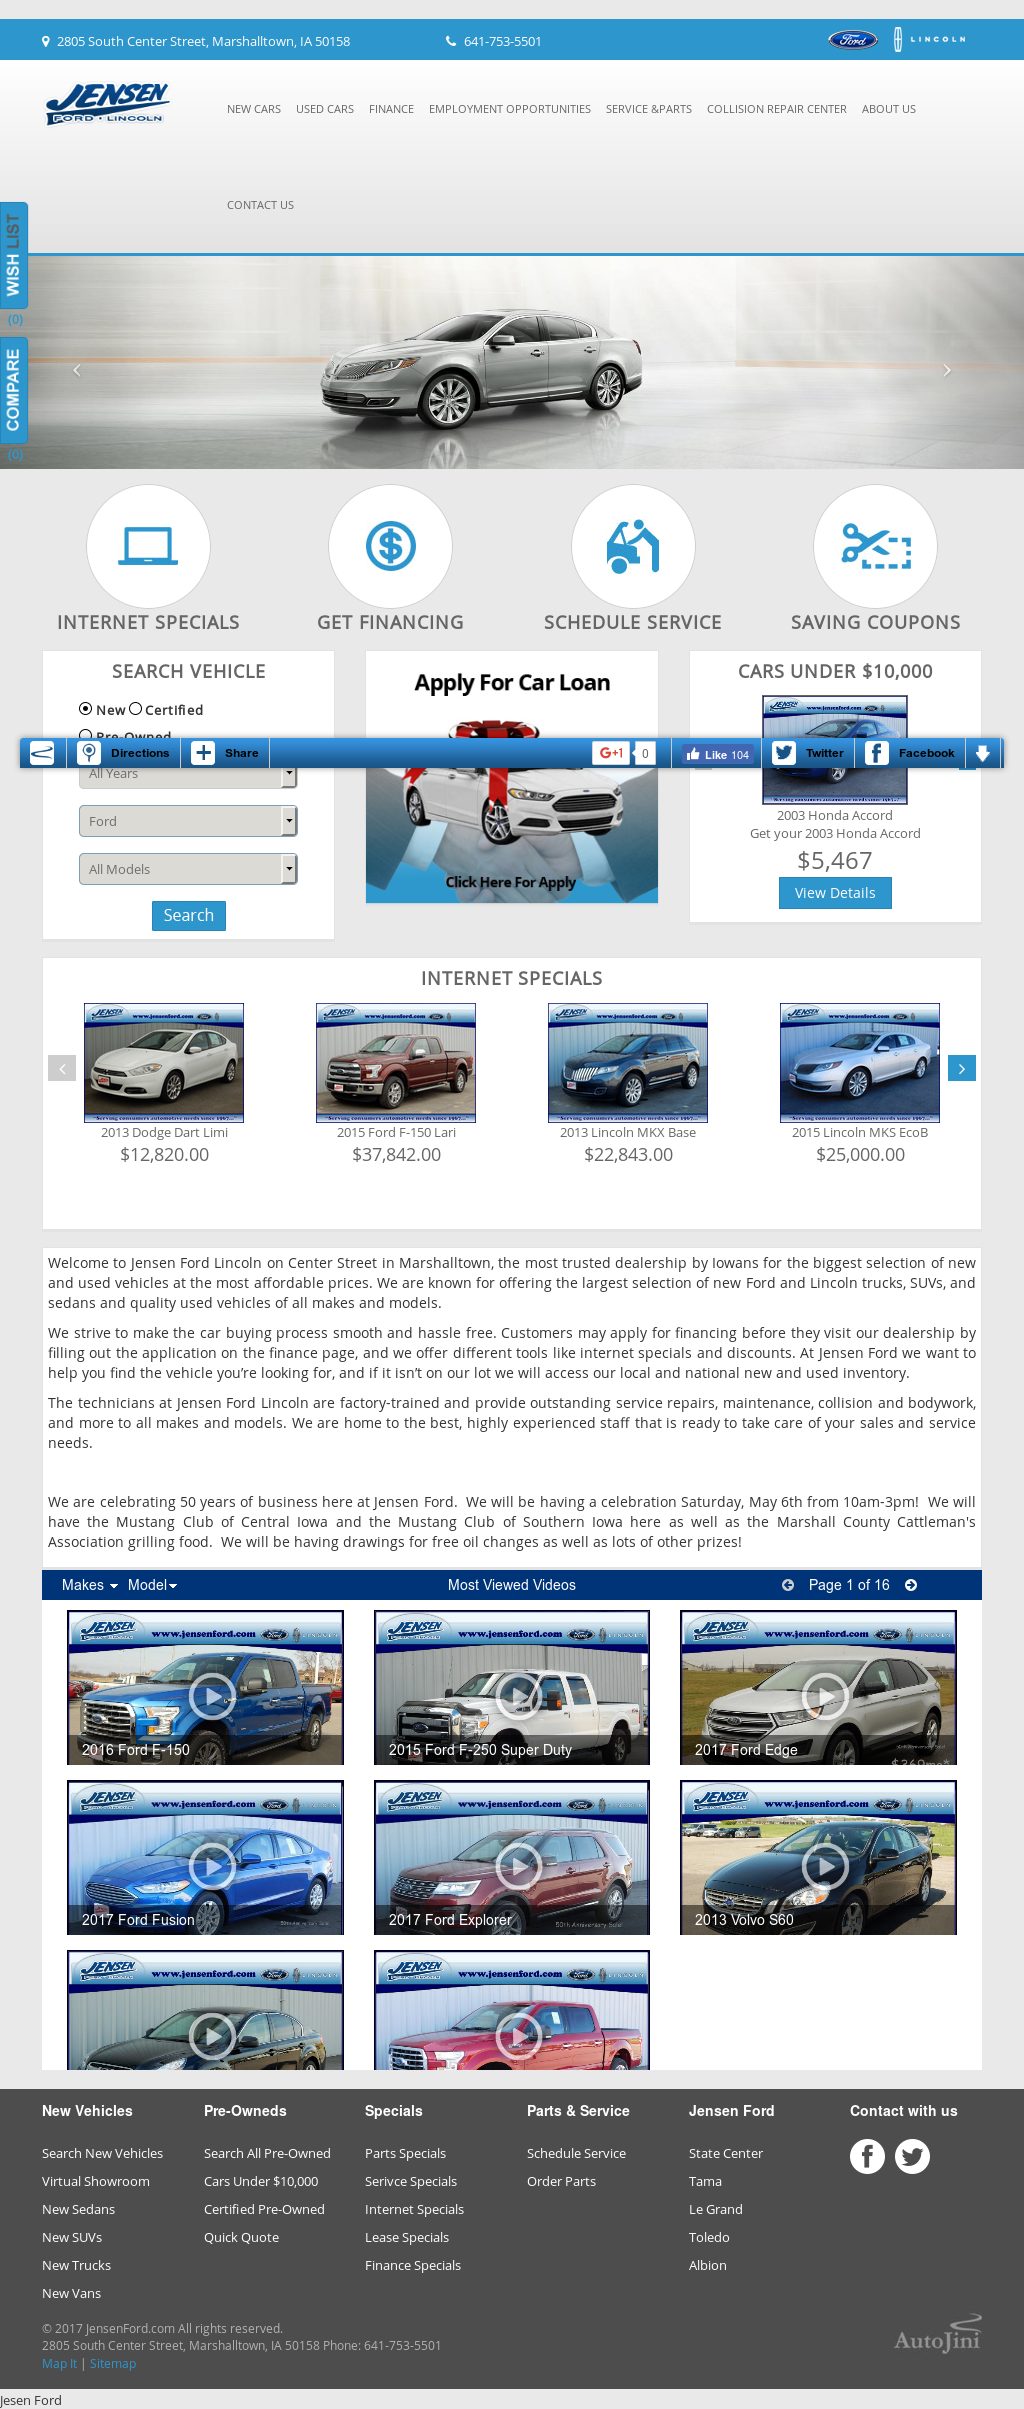 Jensen ford lincoln mercury website history